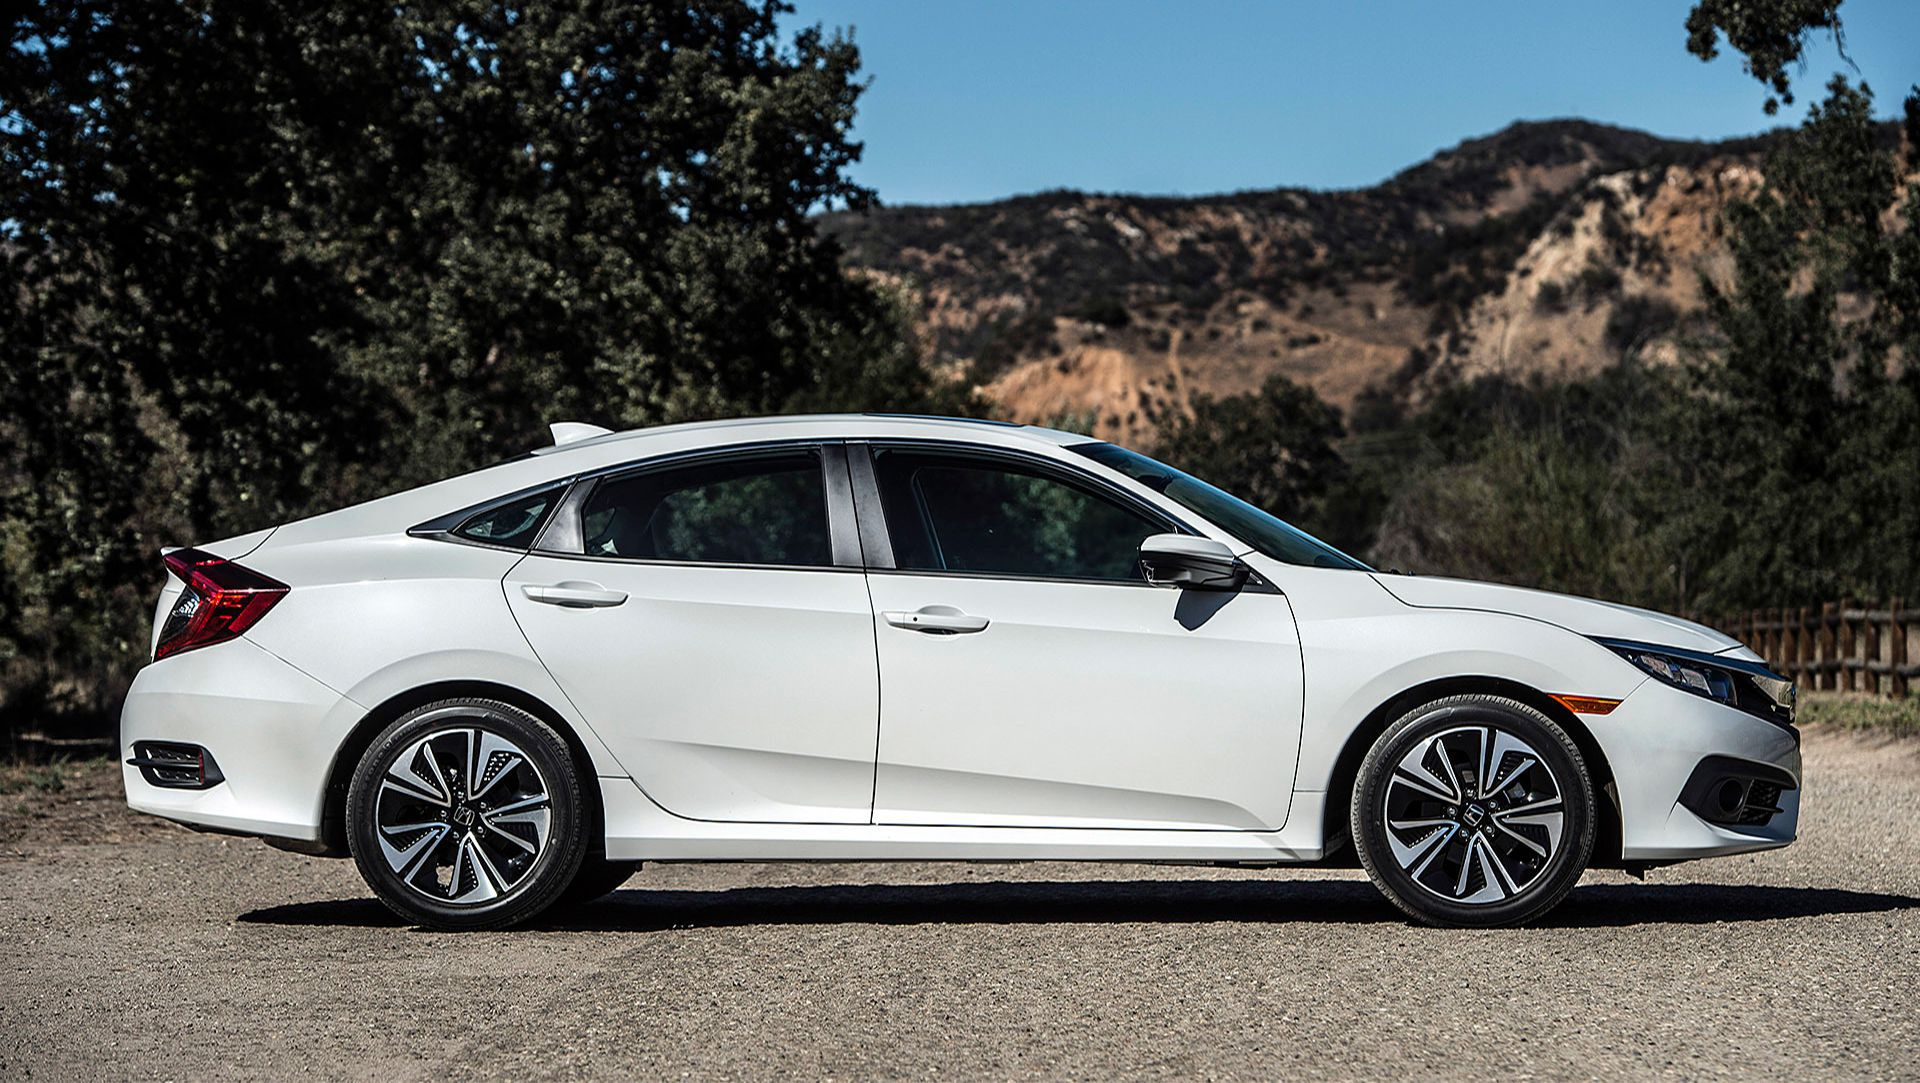 Honda 2016 Civic is set to arrive soon in dealers for a starting price ...